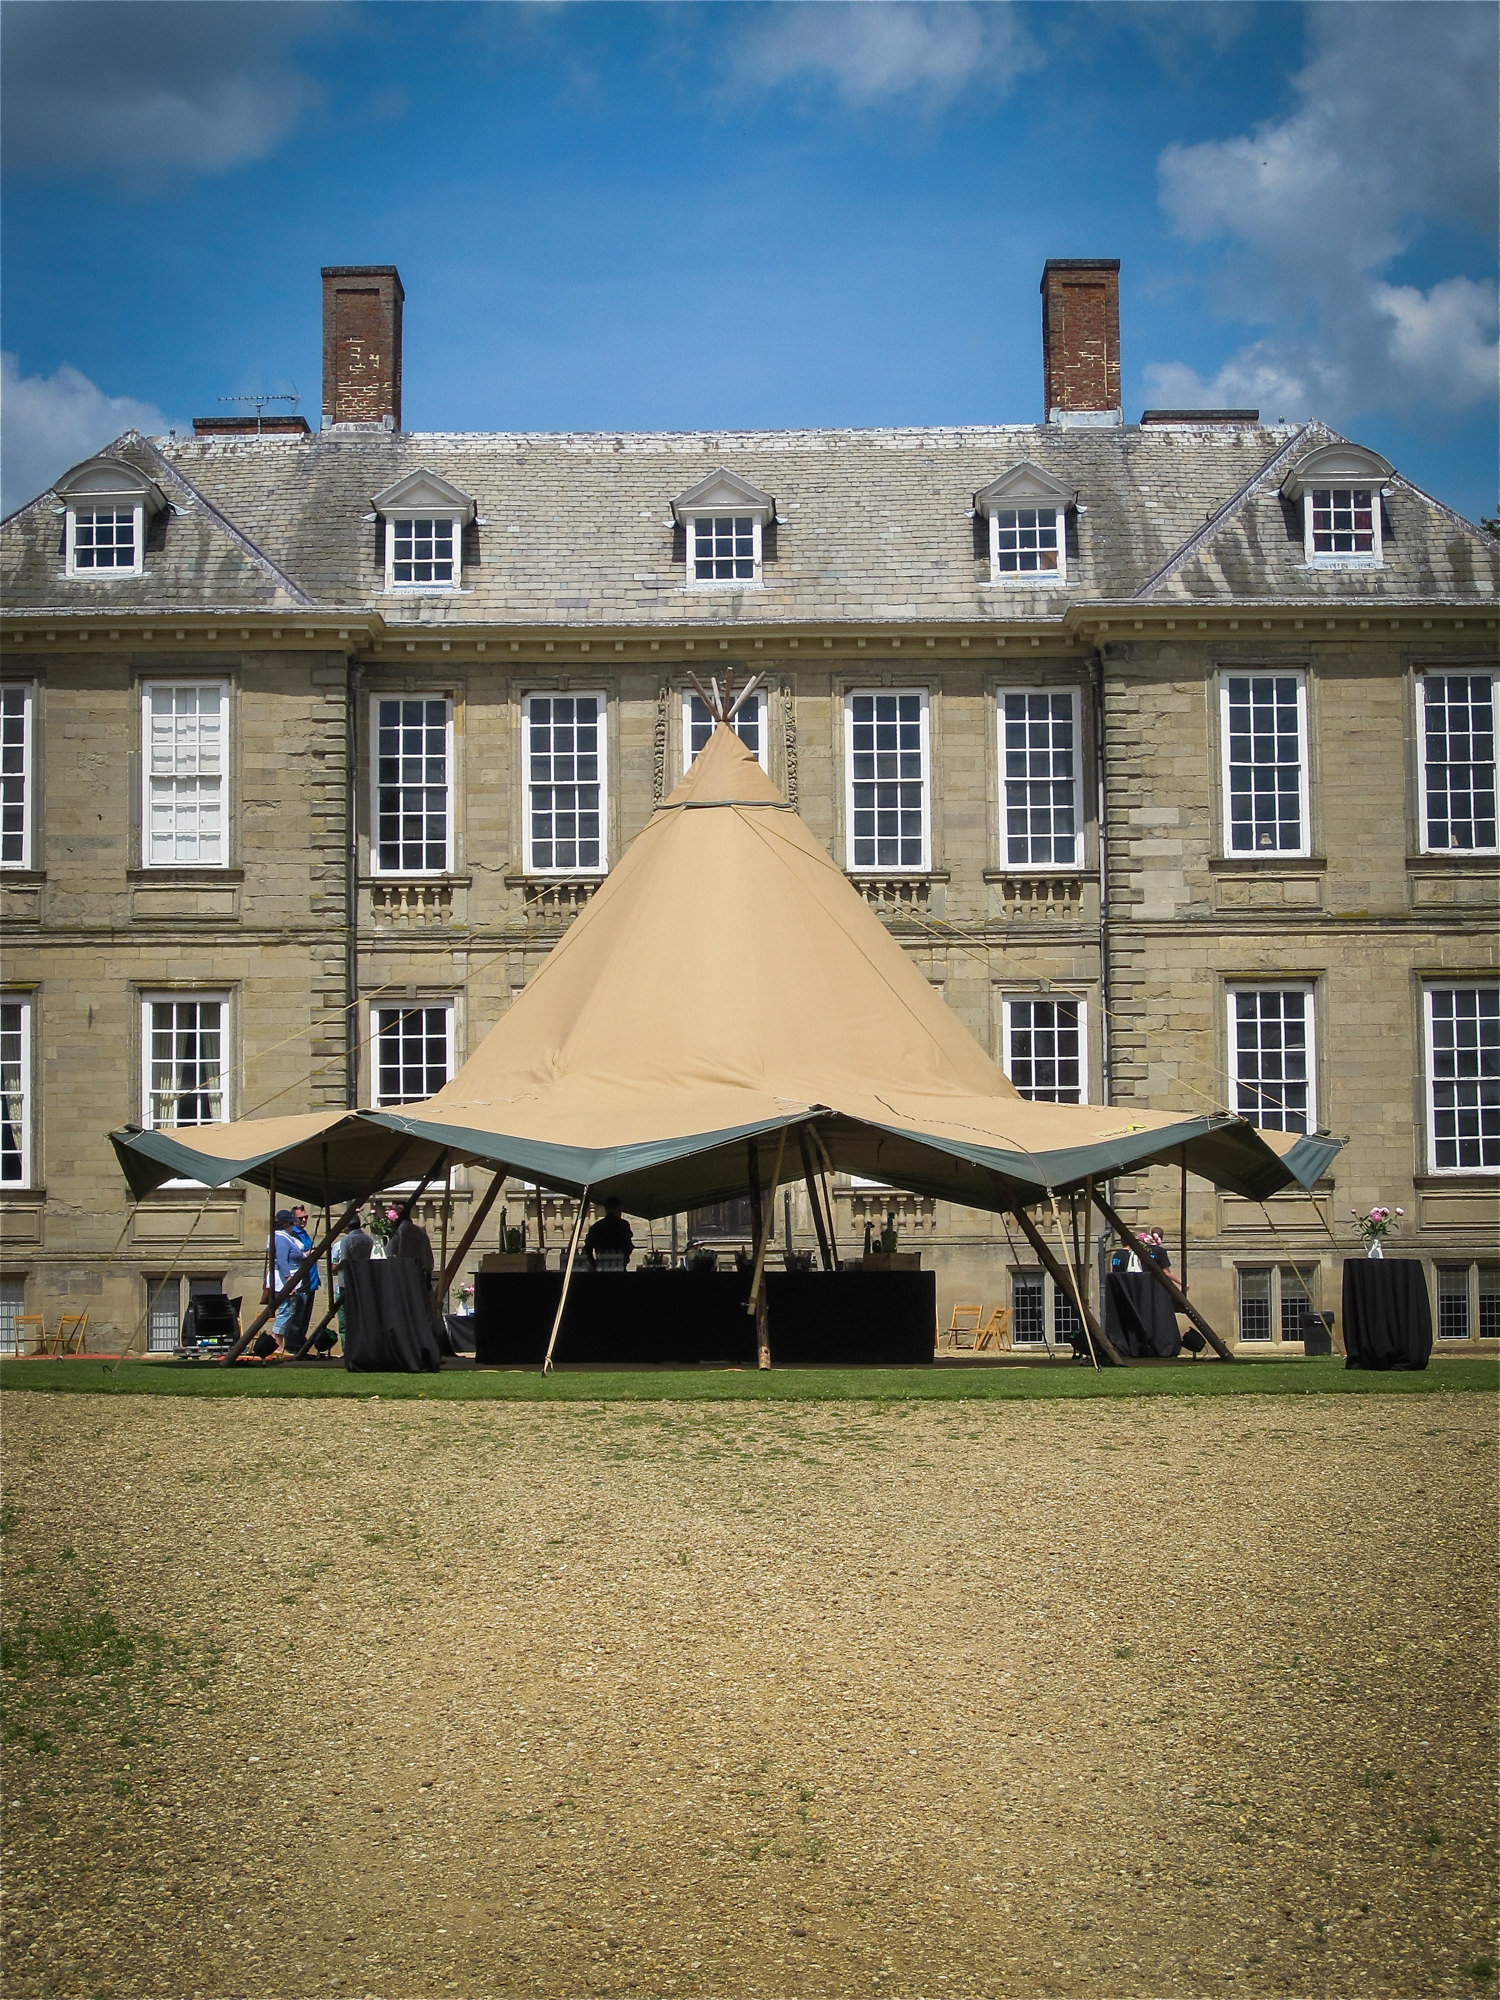 Copy of Tipi outside a stately home